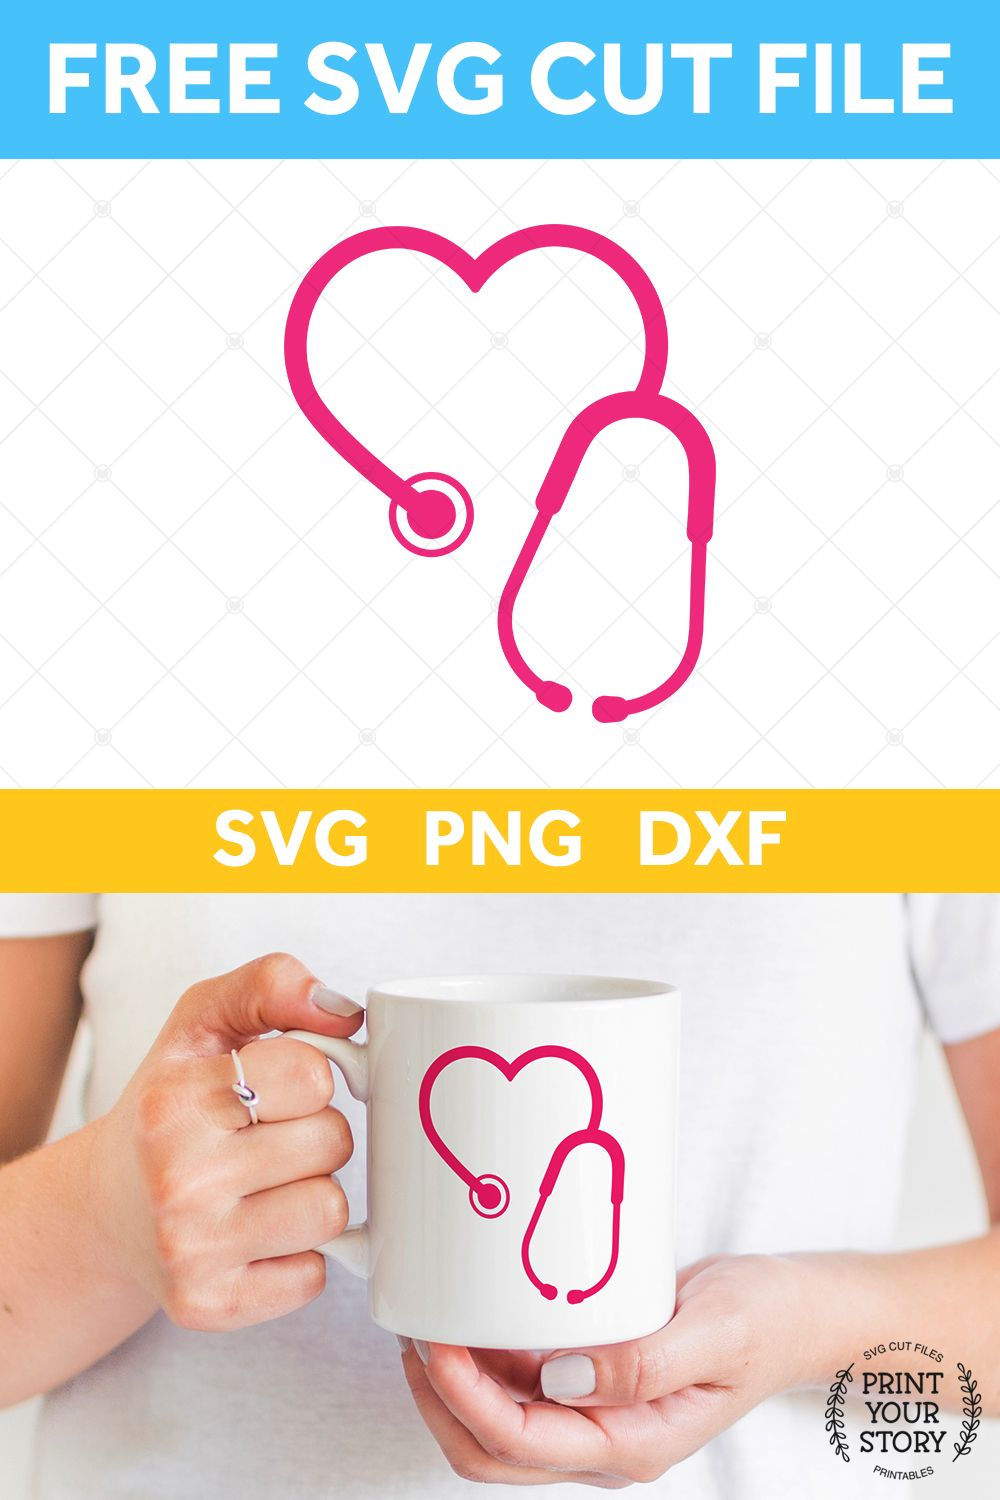 Free Stethoscope SVG File SVG Files Print Your Story